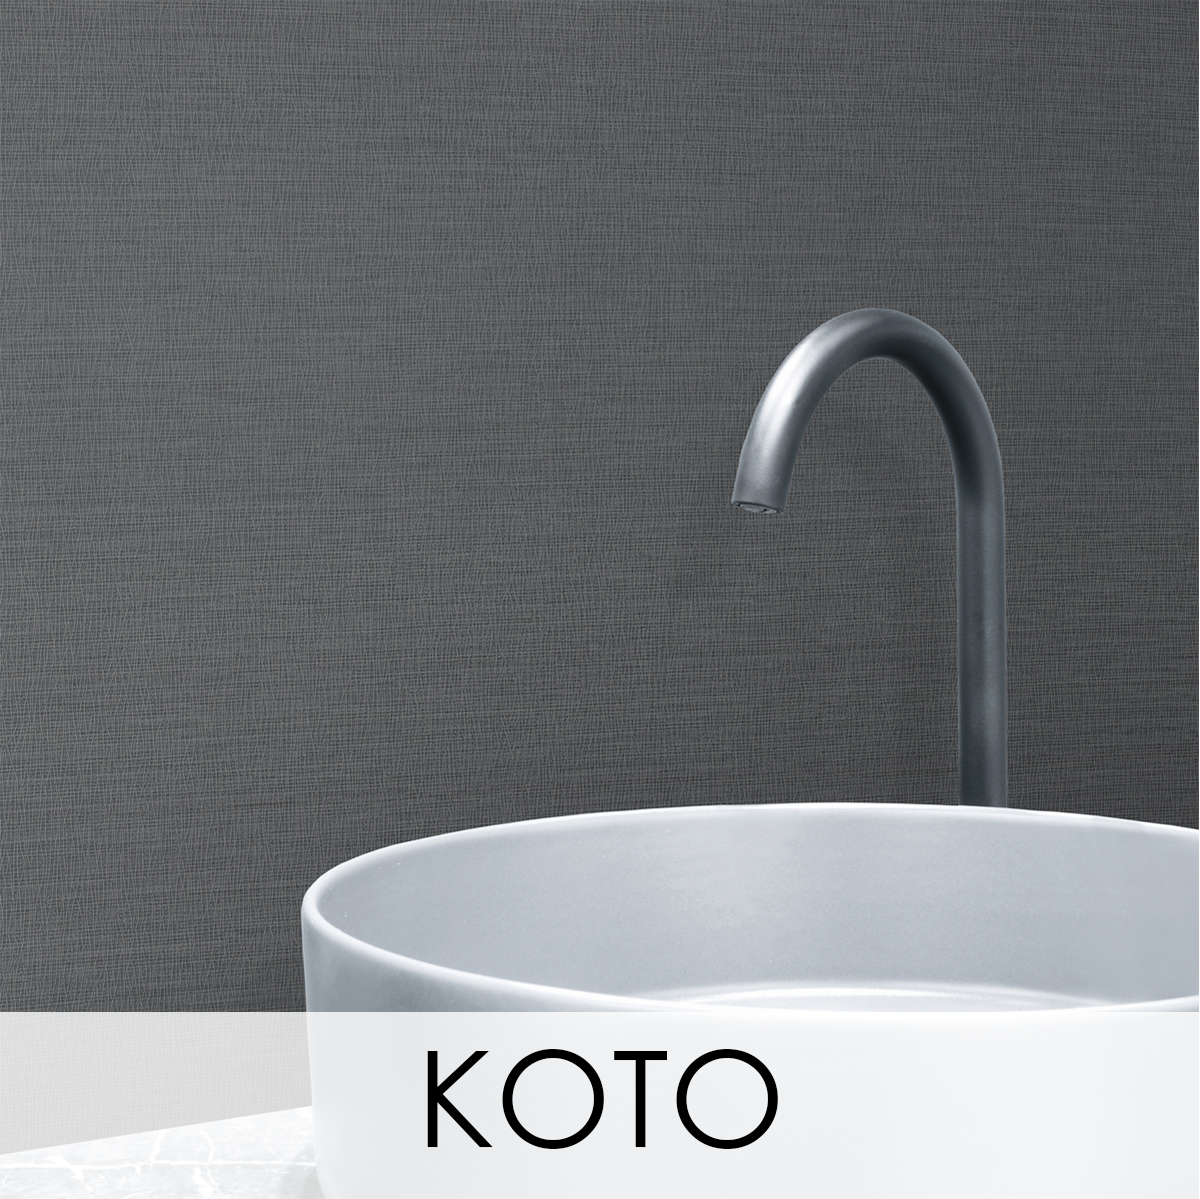 Koto Wallcovering from LEVEY